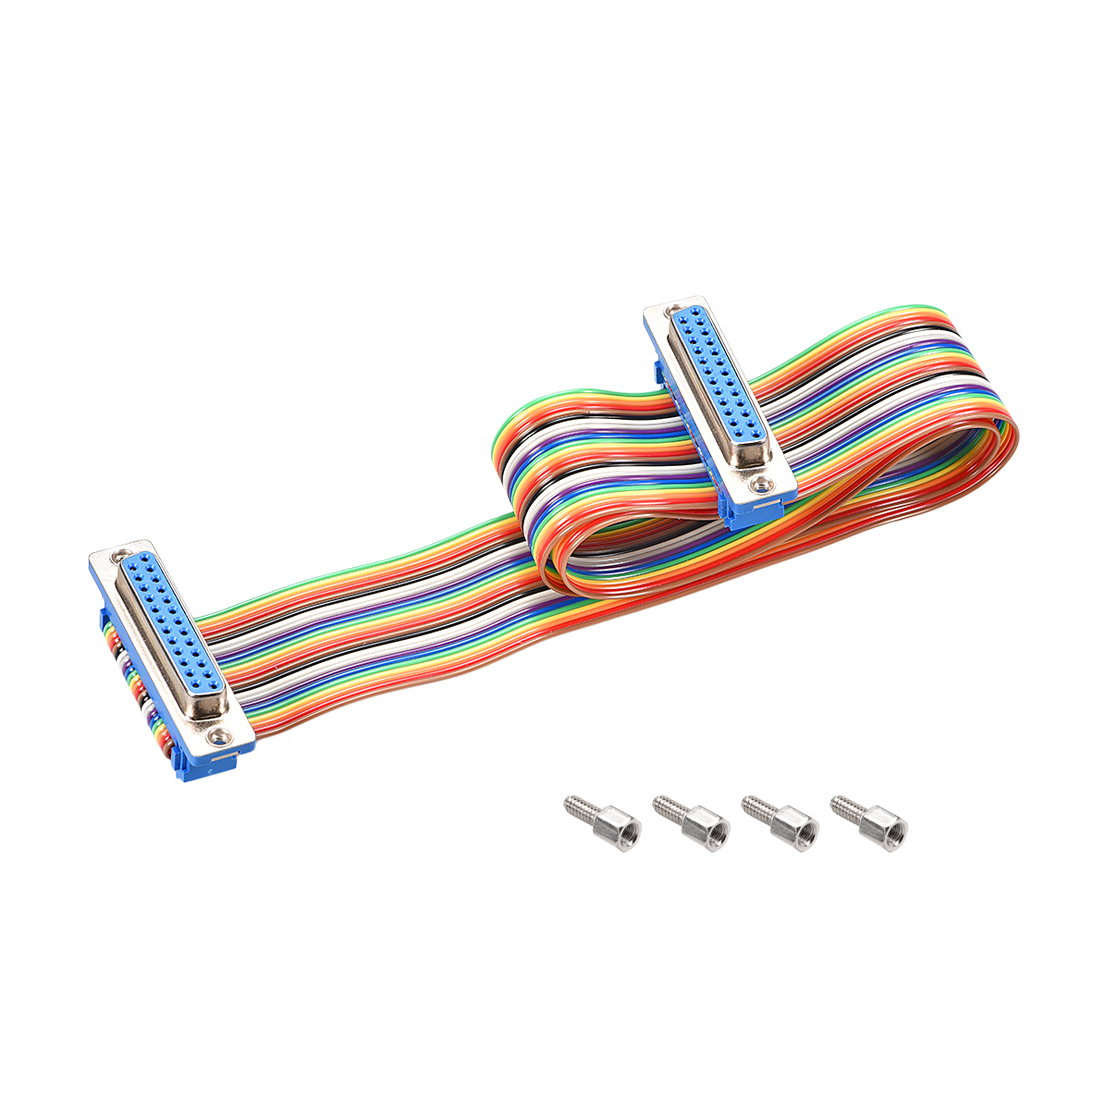 IDC Rainbow Wire Flat Ribbon Cable DB25 F/F Connector 2.54mm Pitch 19.7inch Long